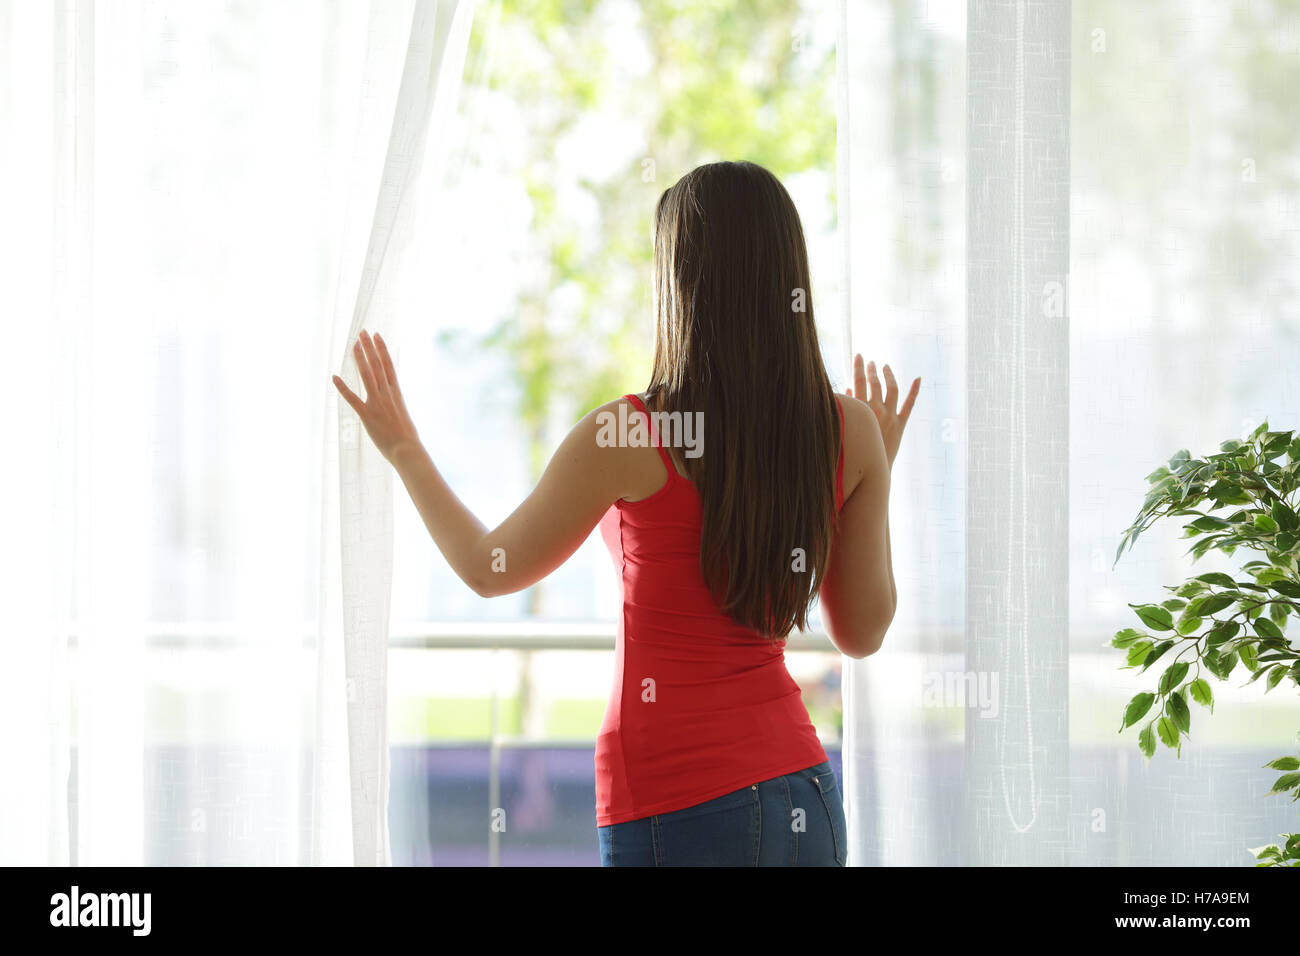 Back view of a woman looking outdoors through a window and opening curtains at home - Stock Image